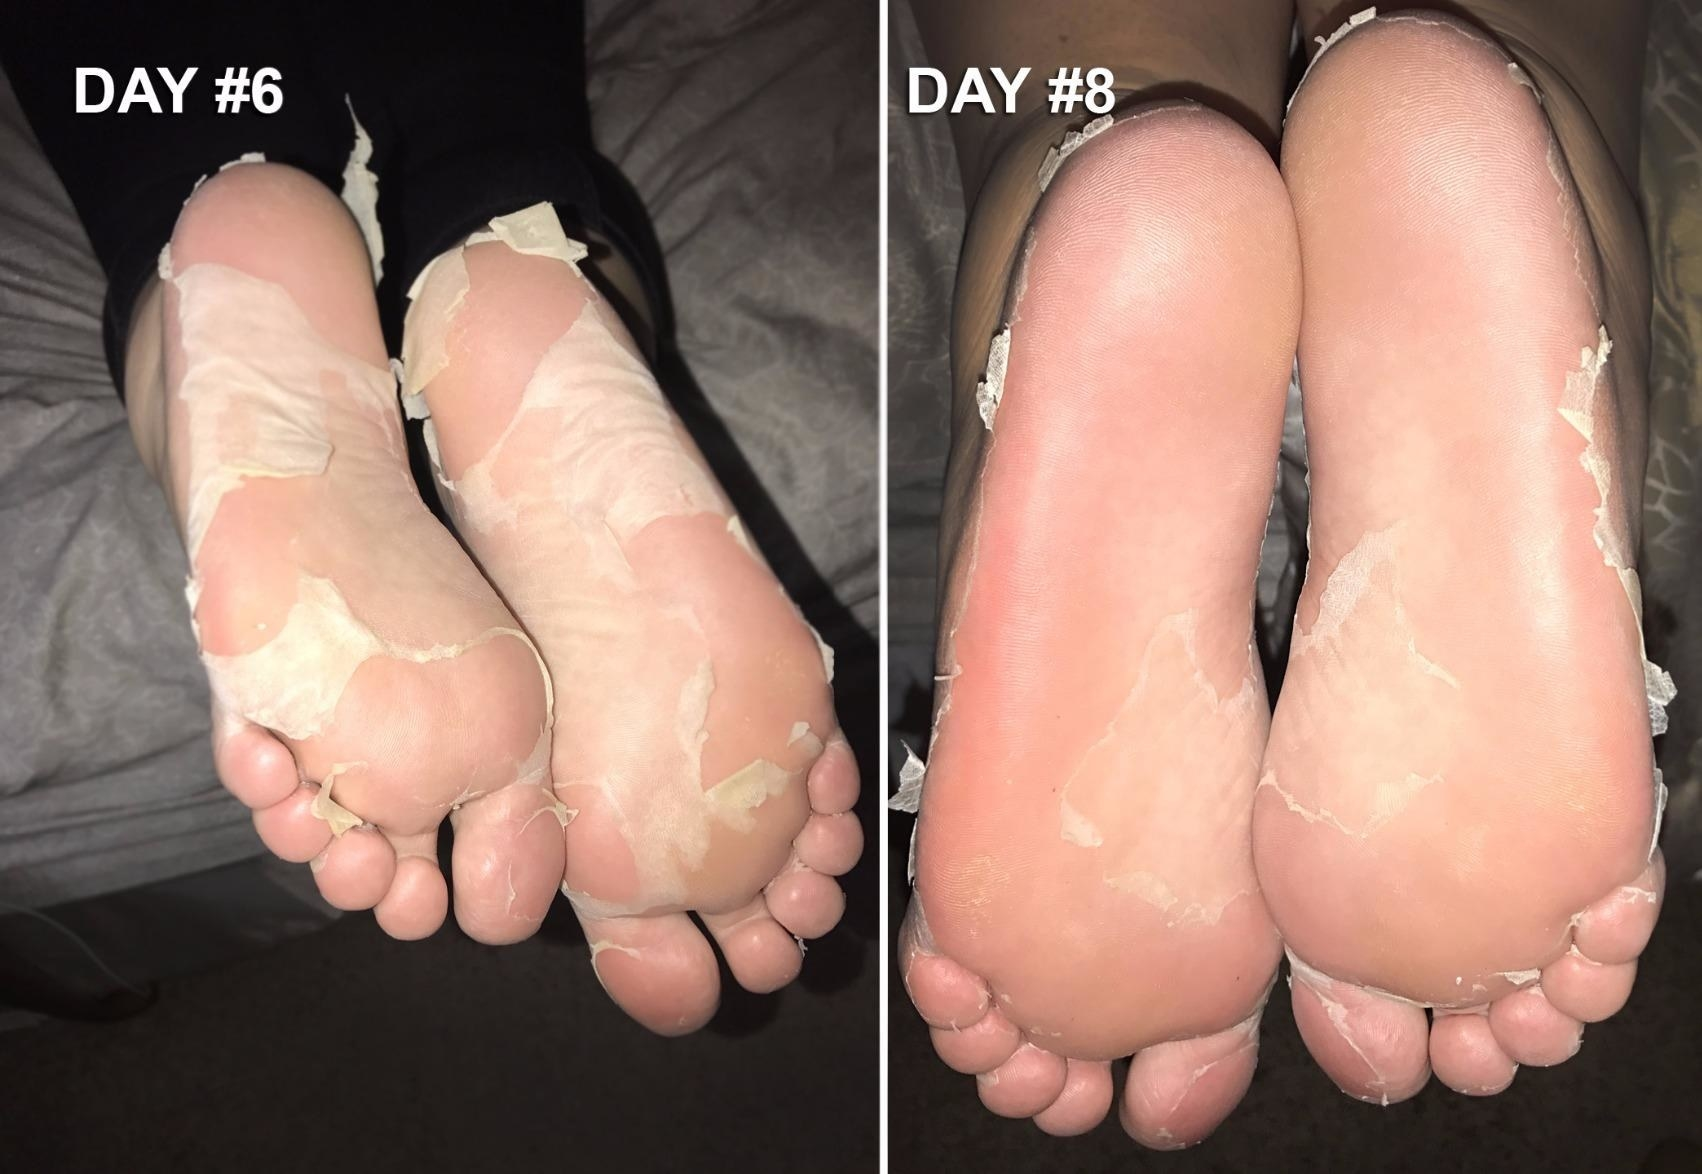 A reviewer image showing their feet during different stages of the peeling process. One photo shows a considerable amount of loose skin and the second photos shows less loose skin, with noticeably smoother soles.